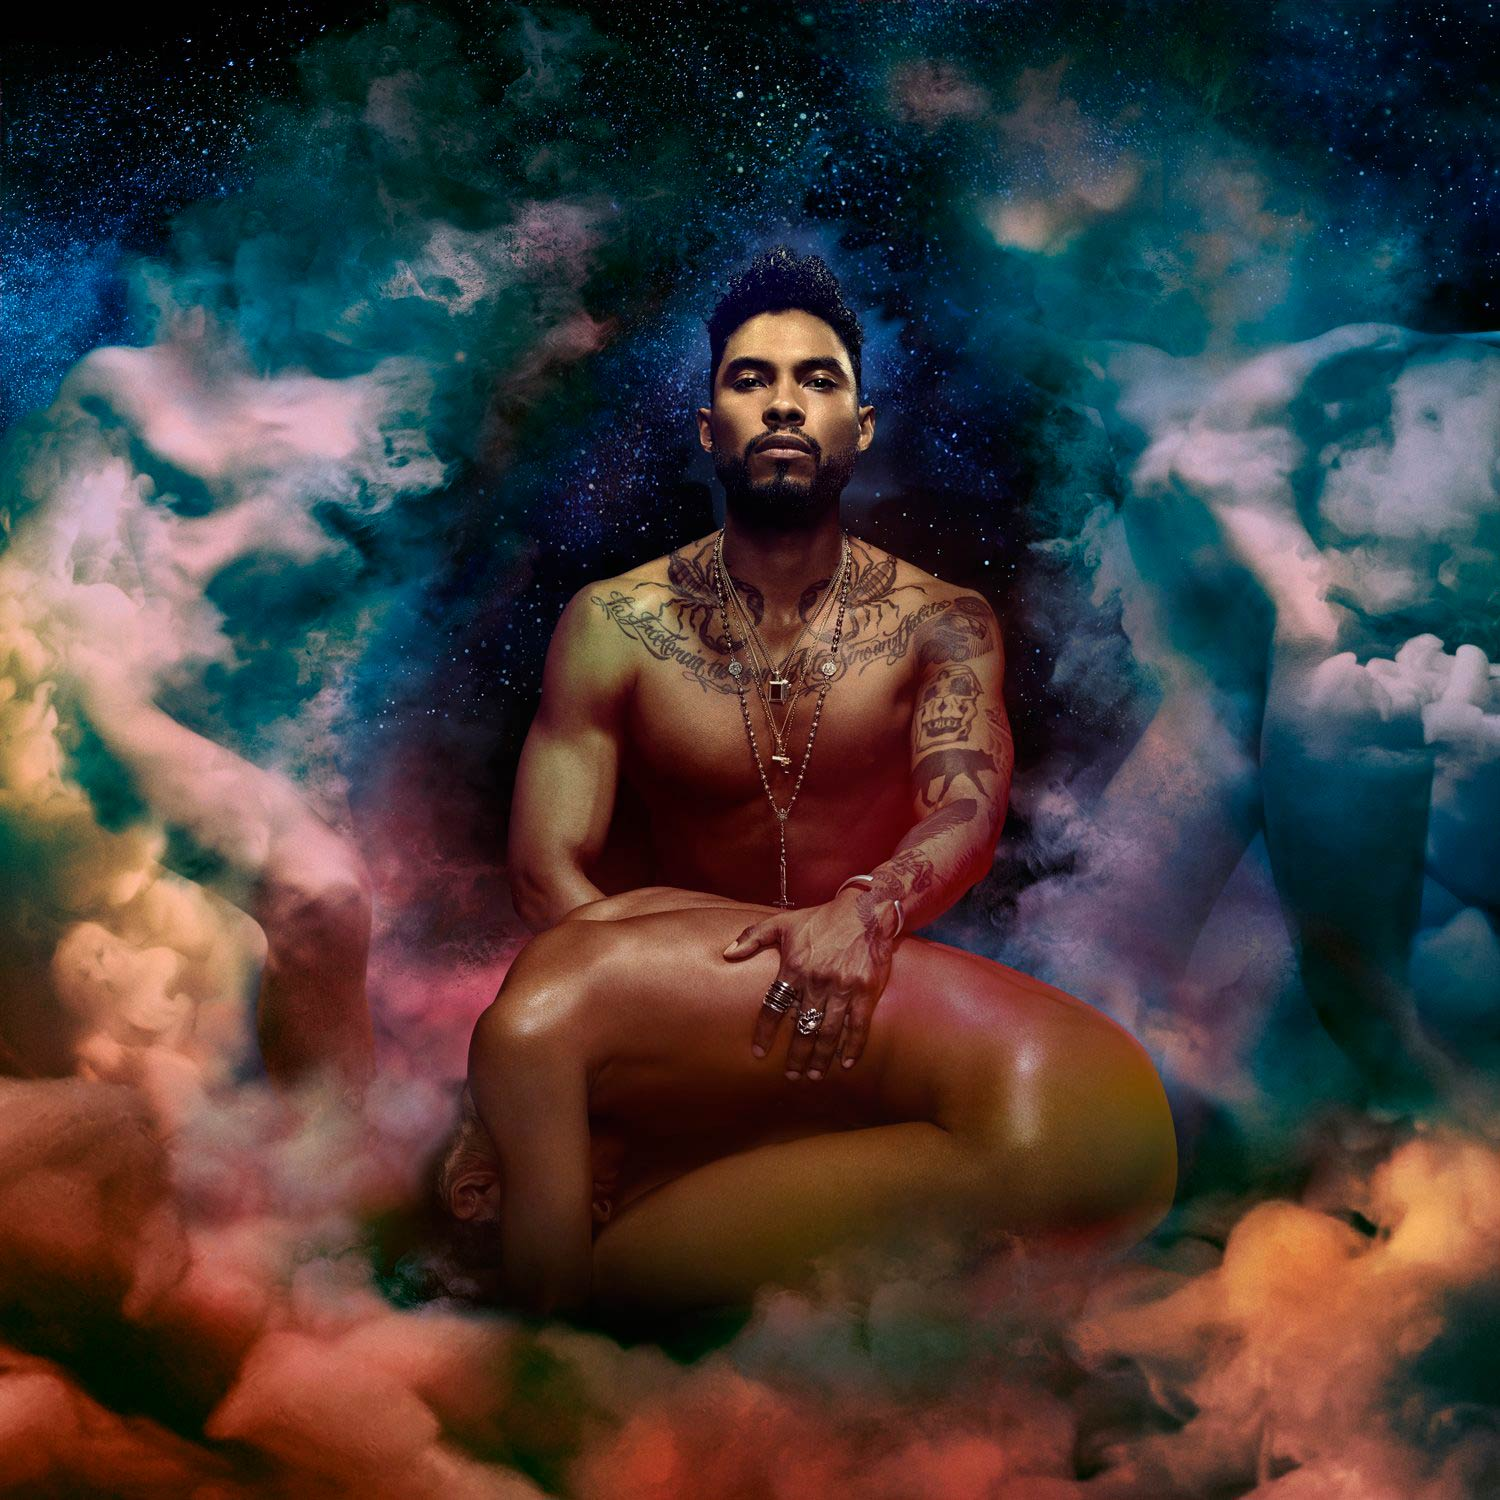 Miguel's Wildheart album cover where he looks really hot in space.jpg